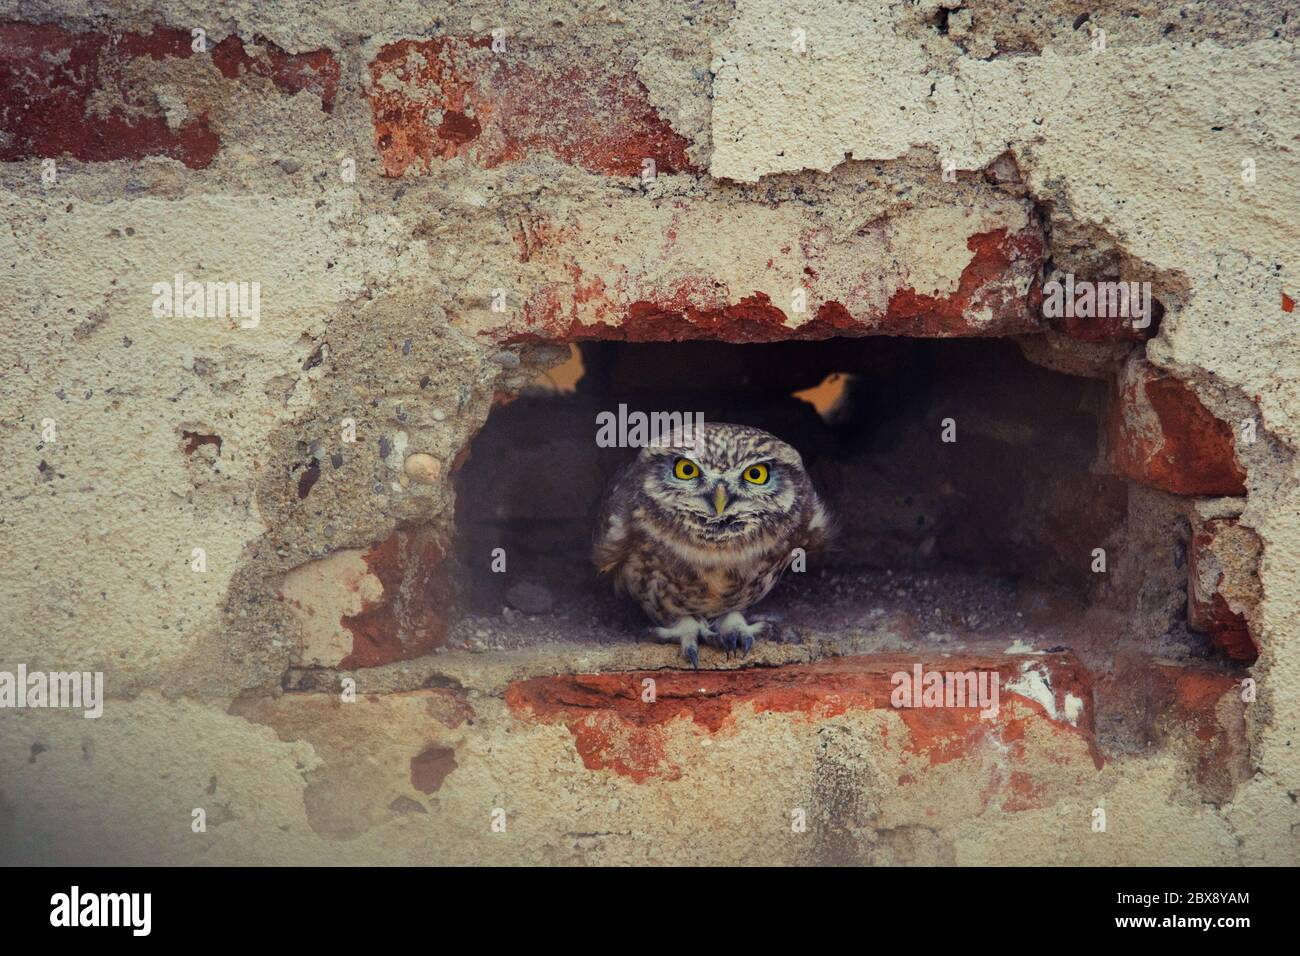 The little owl (Athene noctua) peeking out of a hole in a brick wall. Stock Photo